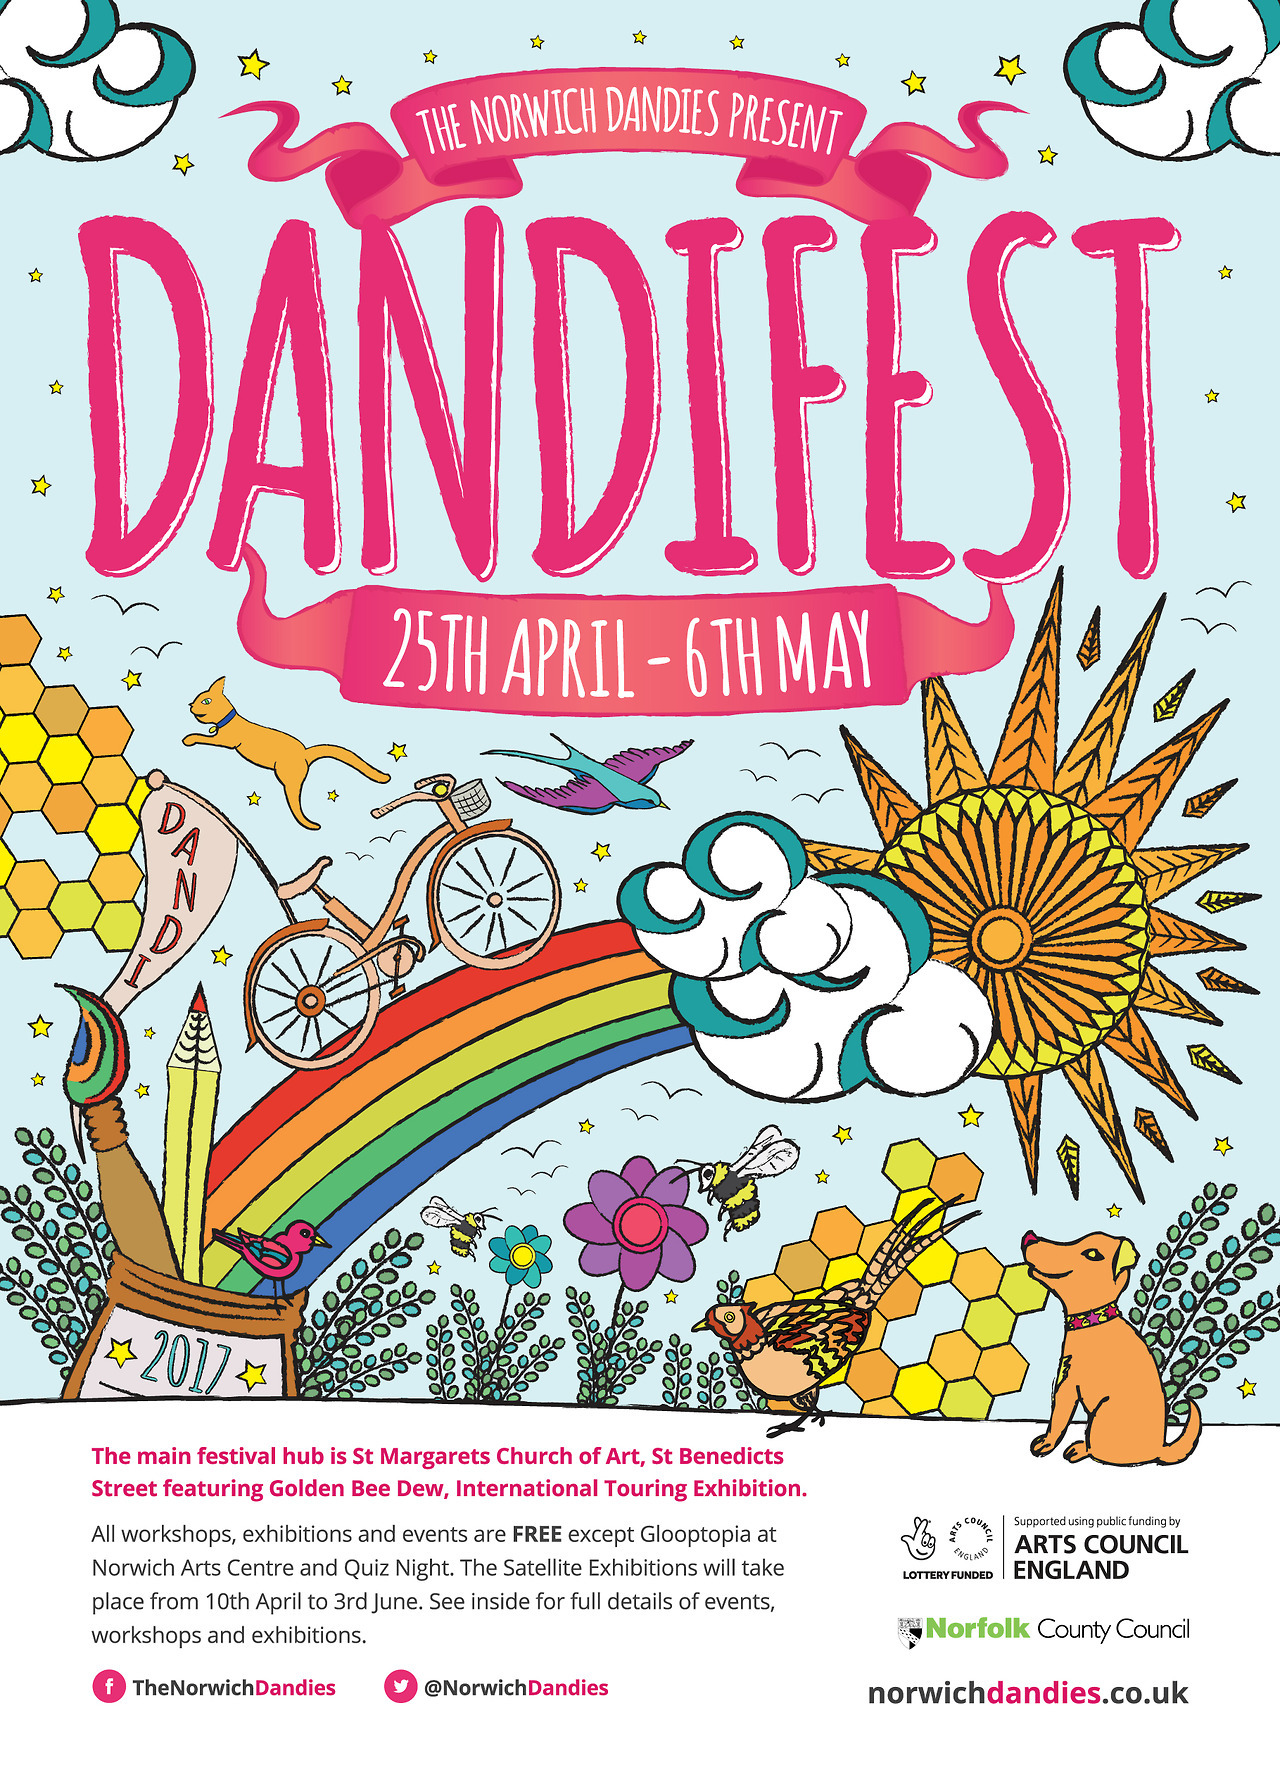 For more information about this year's Dandifest check out the full programme of exhibitions and events here: https://norwichdandies.co.uk/_assets/pdfs/dandifest-2017-programme.pdf